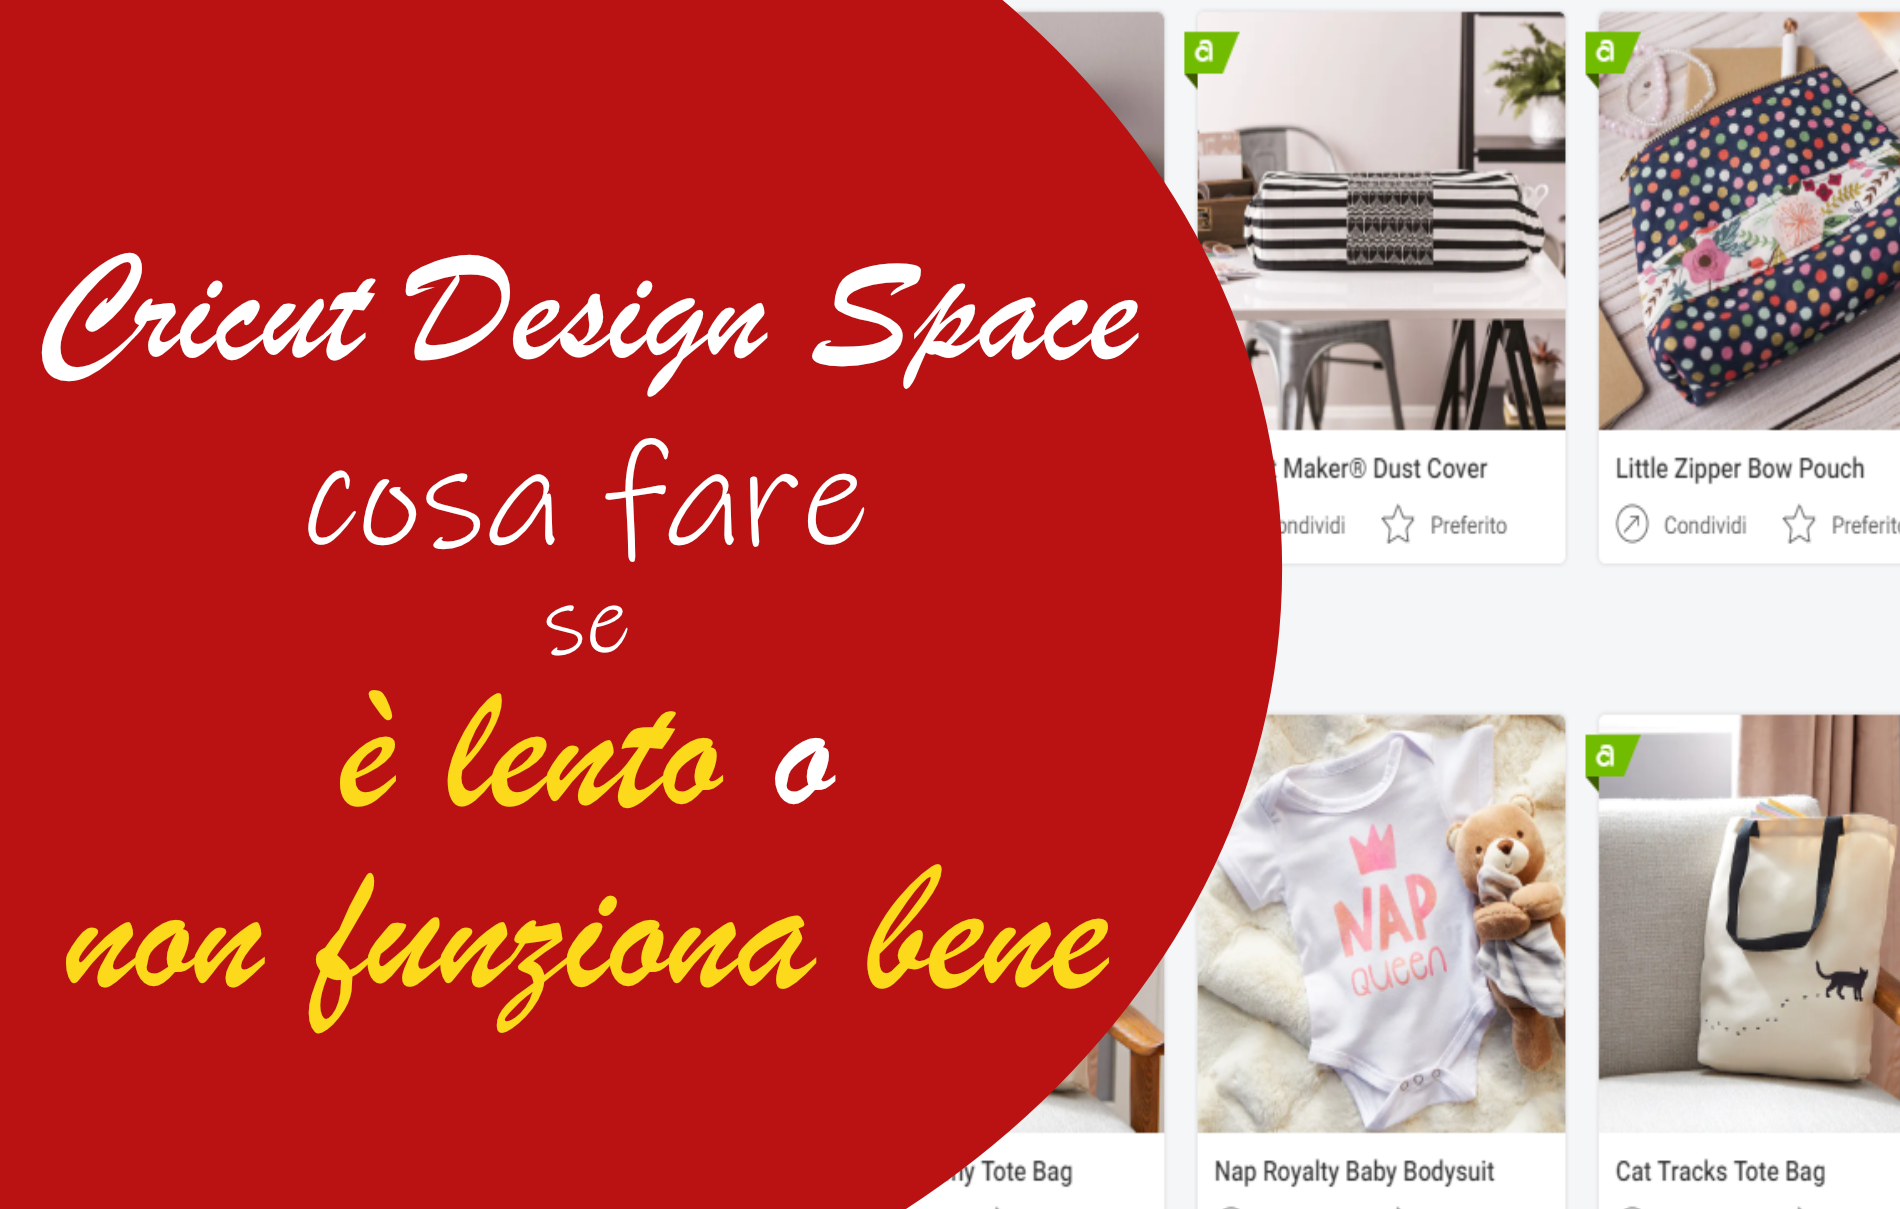 Cricut Design Space si blocca è lento